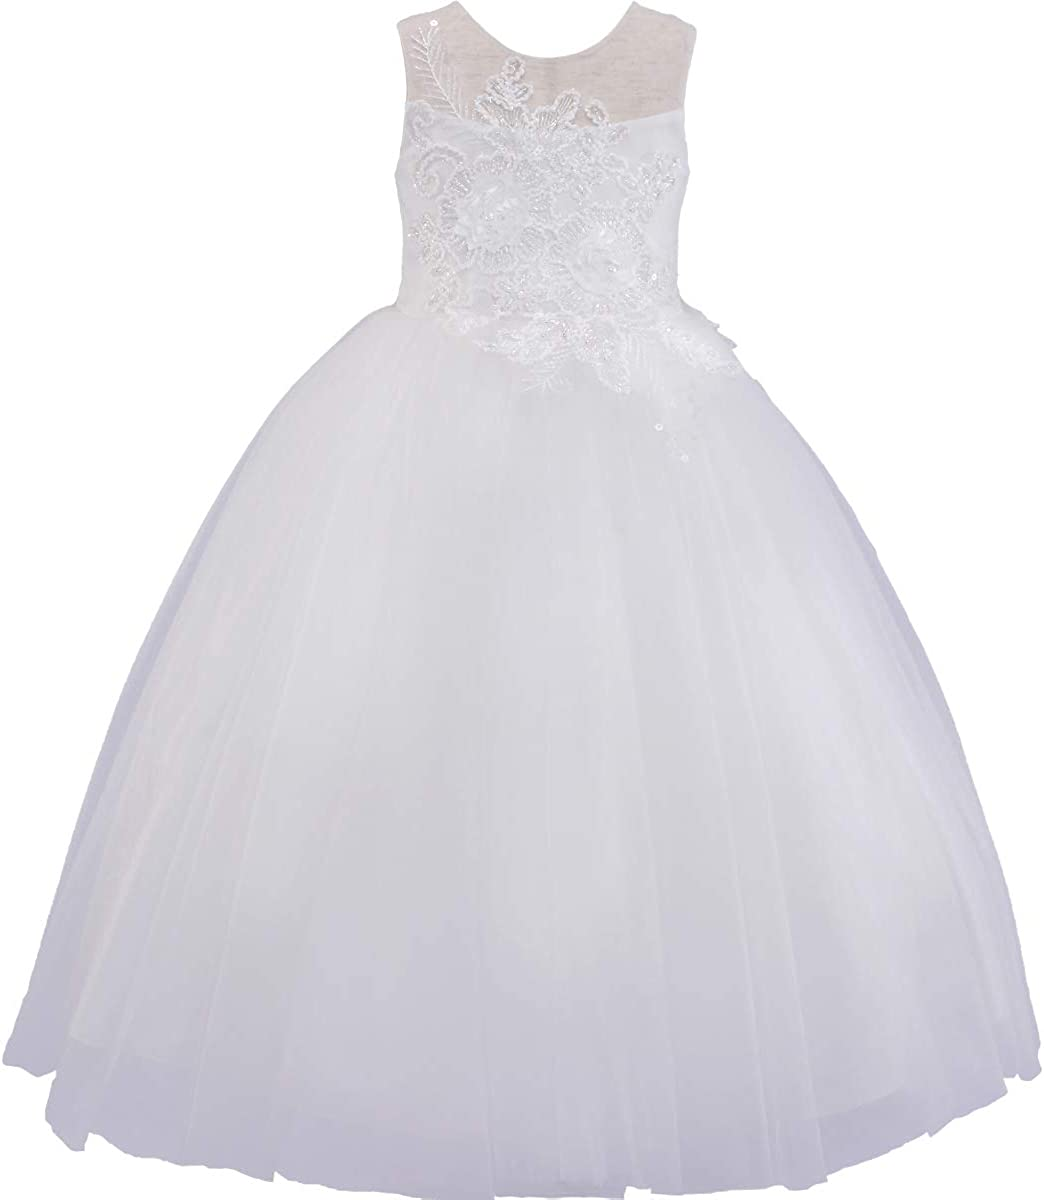 Flower Girl Dress 4D Floral Dress Special Occasion Girls Sleeveless Dress Party Holiday First Communion Size 2-14